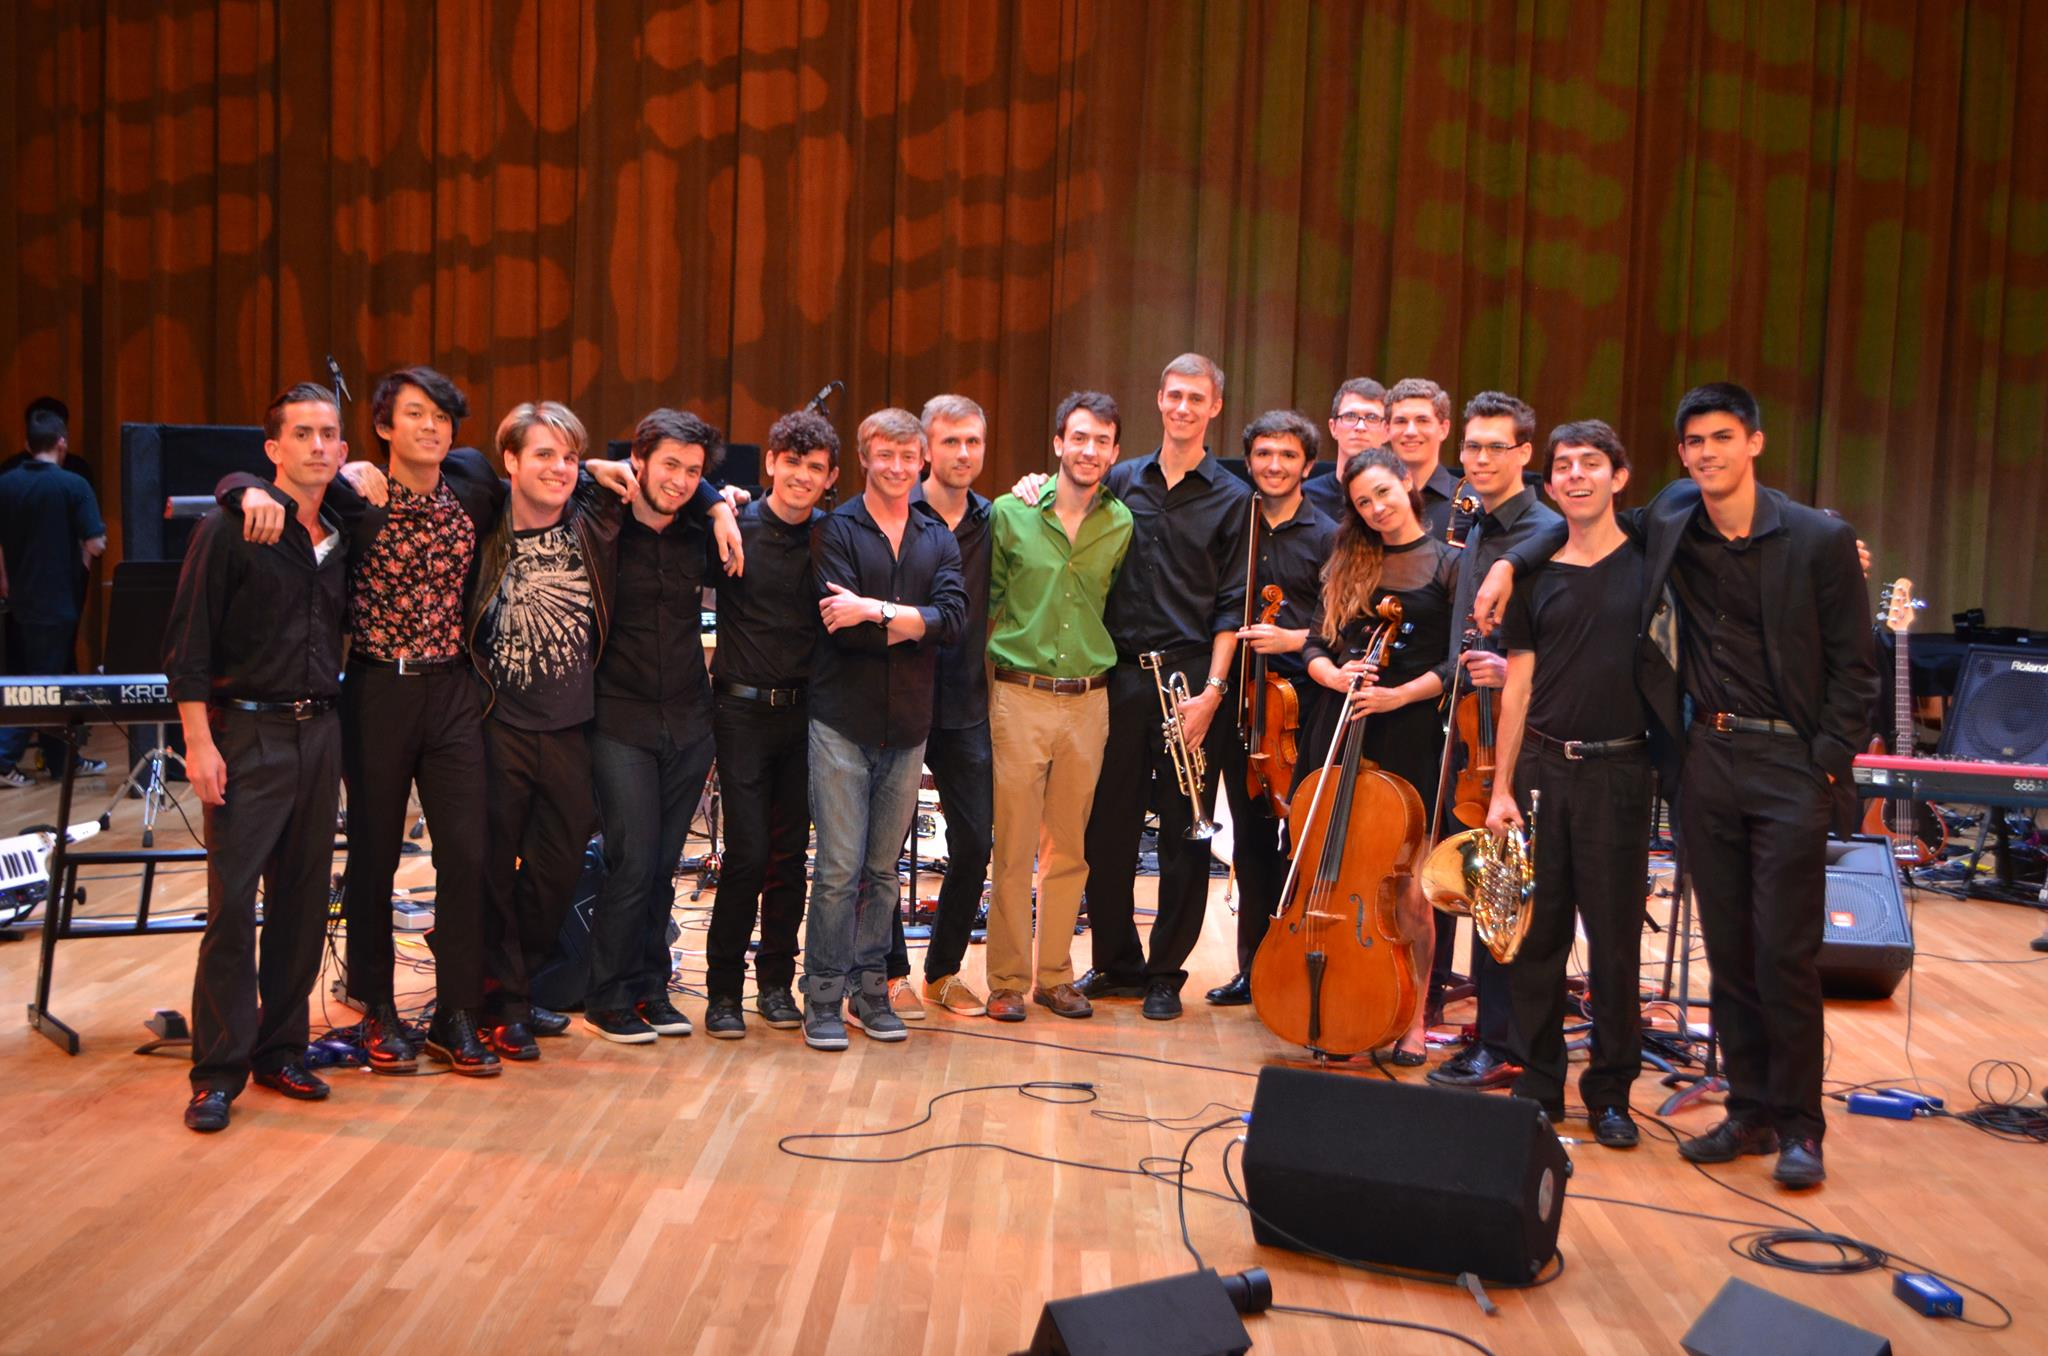 Standing onstage with (almost) everyone who performed with me in my senior recital at the University of Miami.